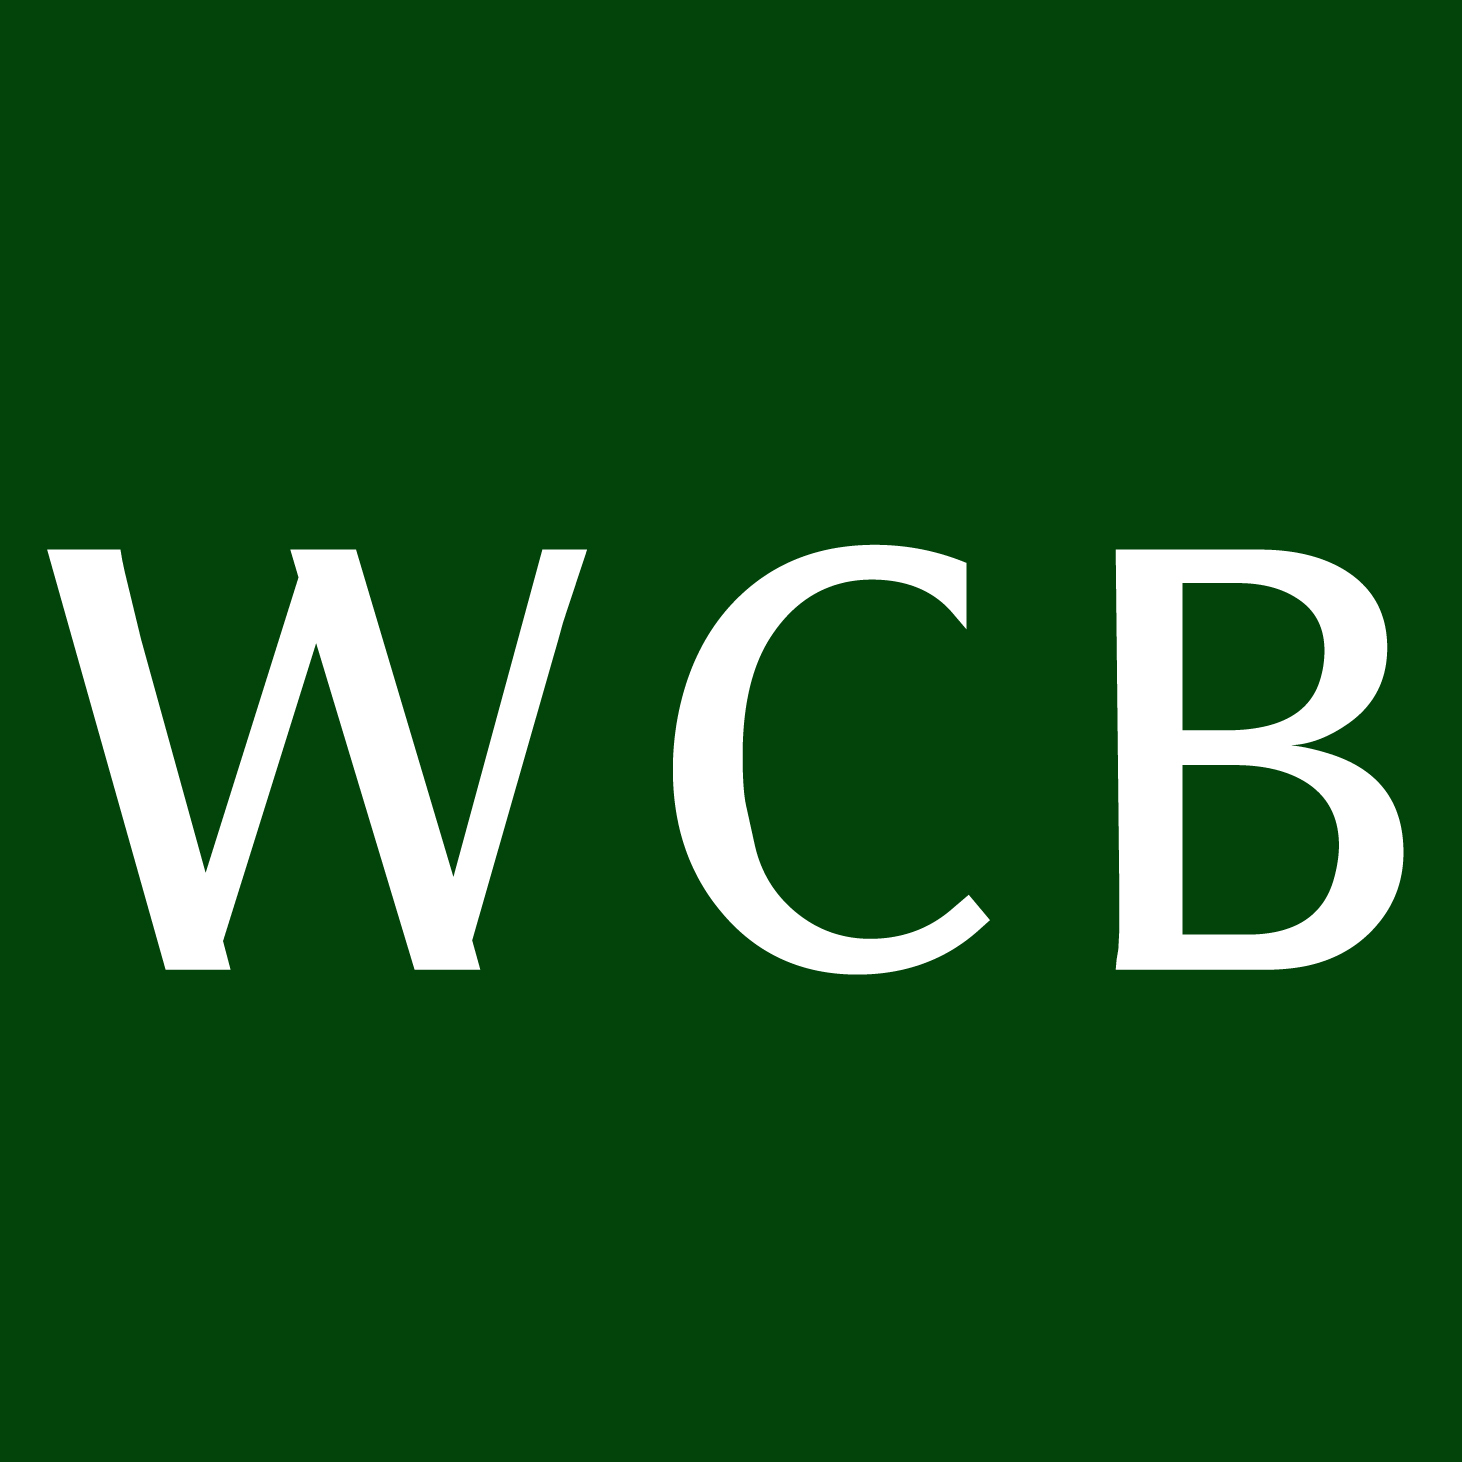 Wales Council of the Blind logo